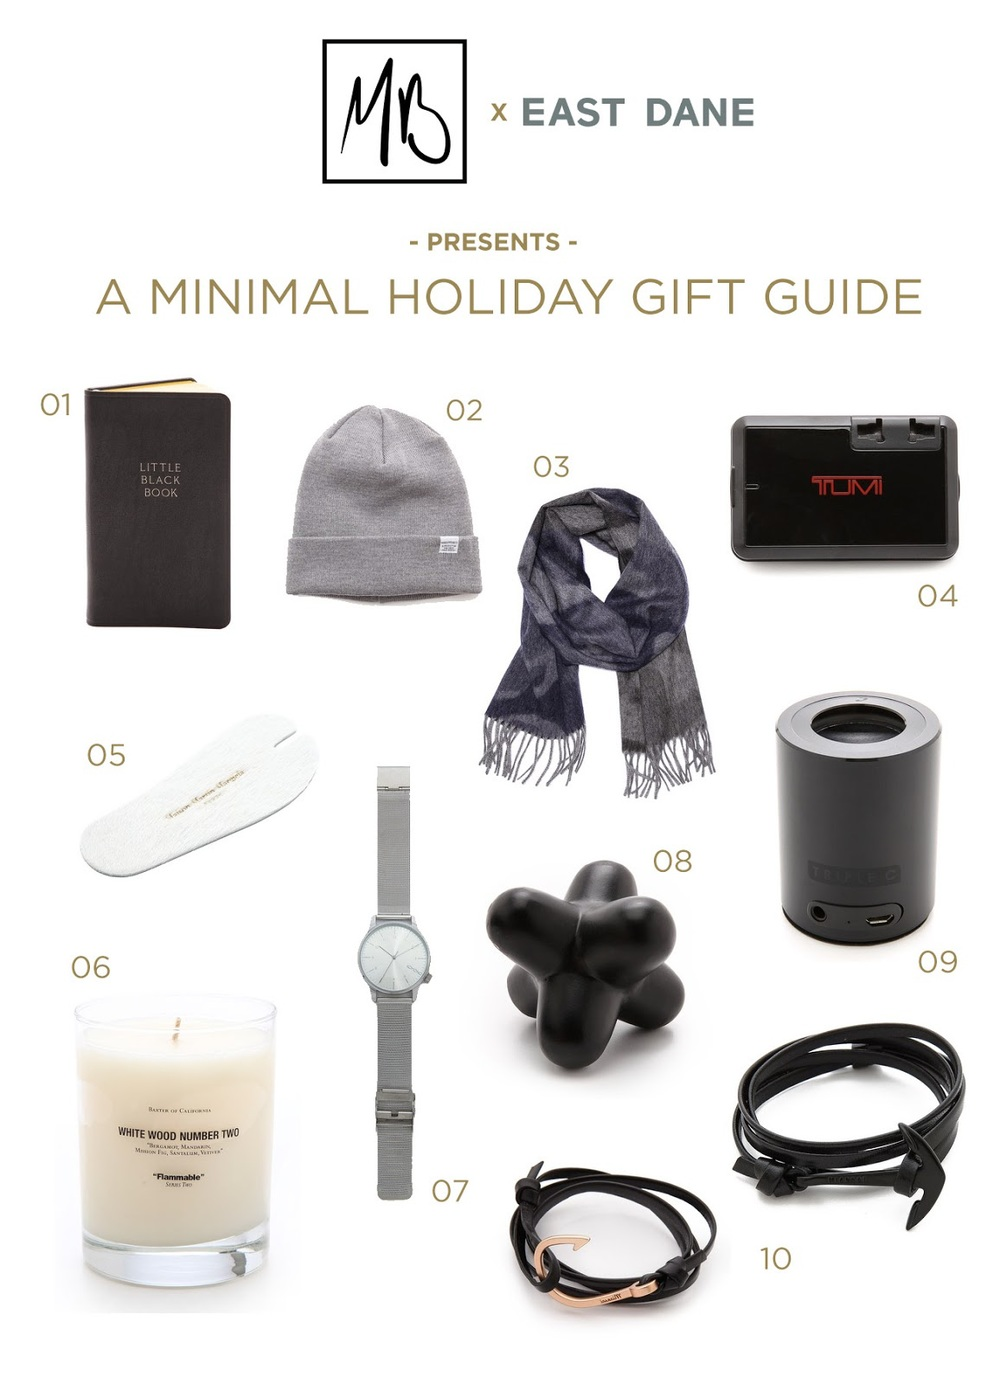 mybelonging-east-dane-gift-guide-giveaway.jpg